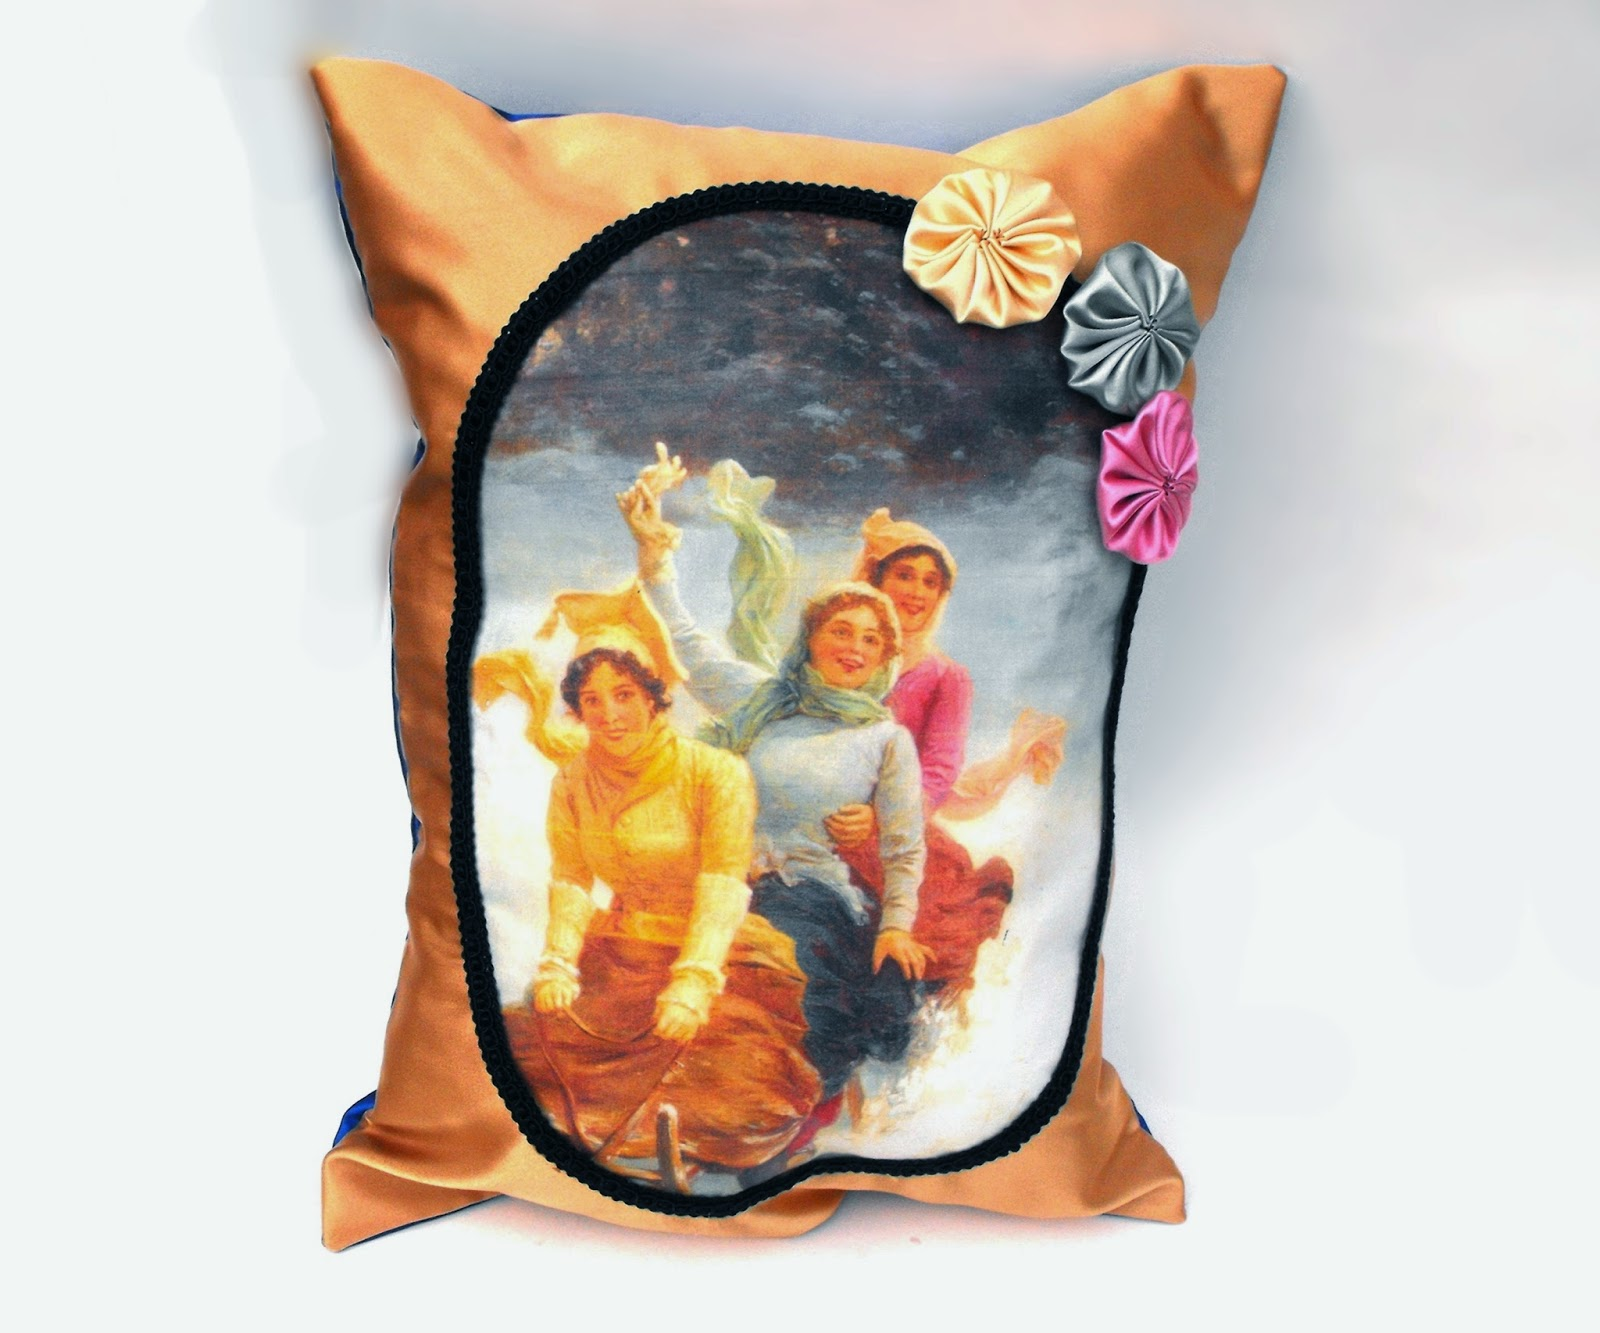 https://www.etsy.com/listing/193760423/sleigh-ride-sisters-pillow-handmade?ref=shop_home_active_1